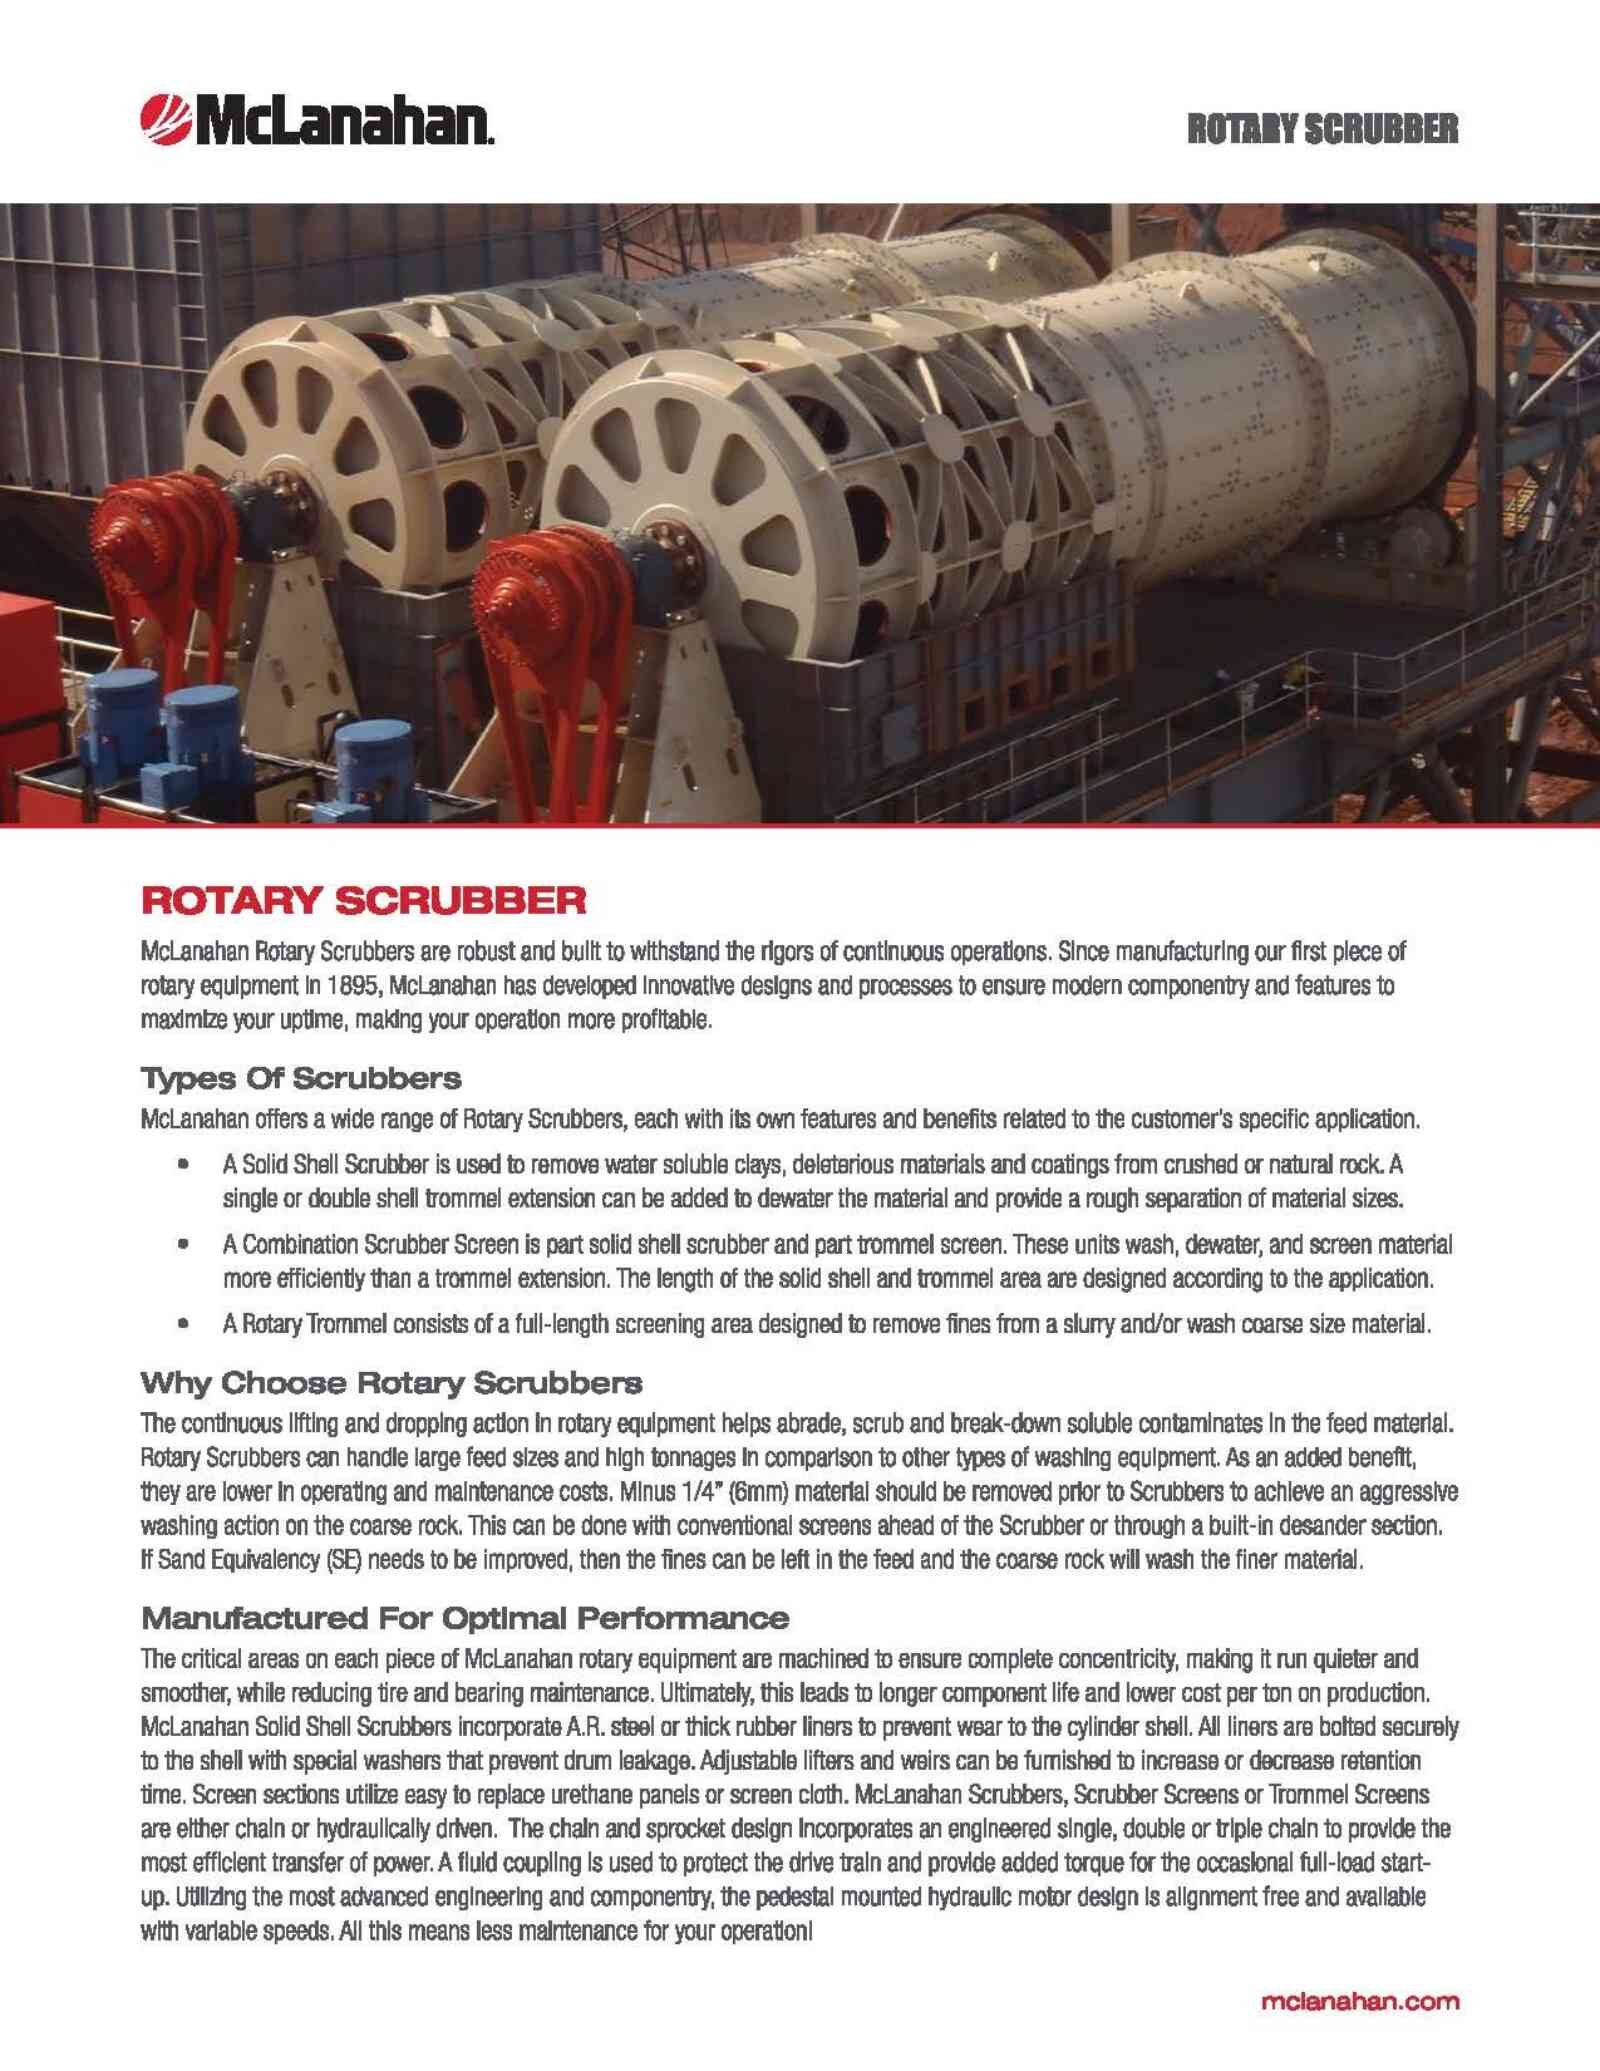 Rotary Scrubber Brochure Image Page 1